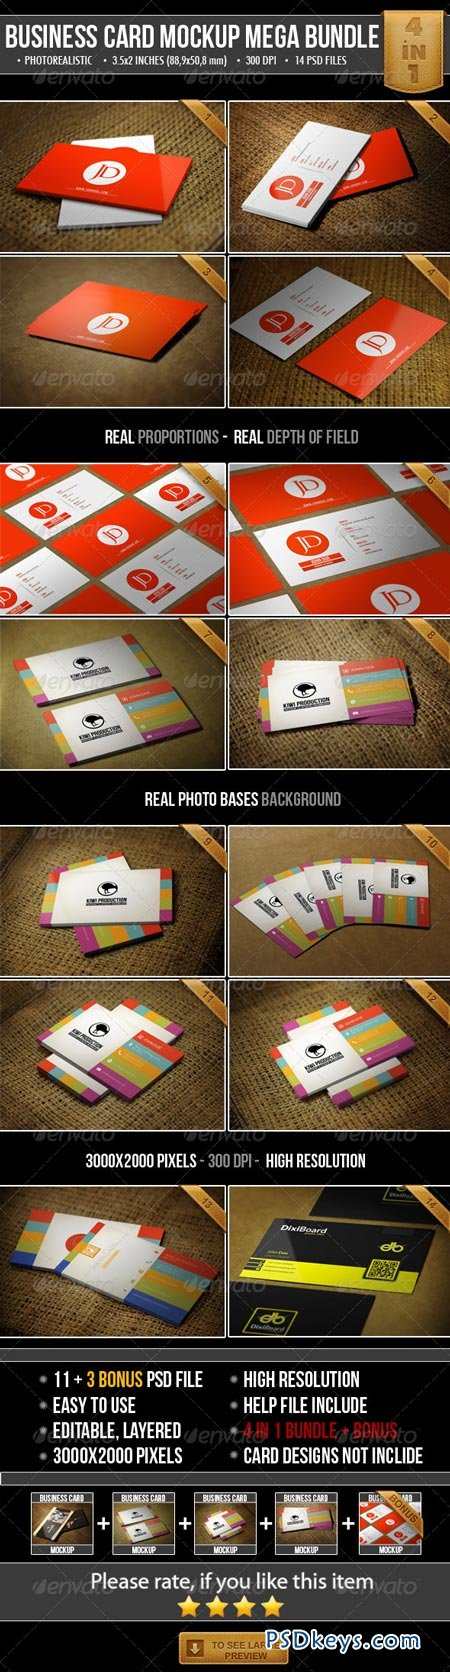 Realistic business card mock up bundle 4948801 free download realistic business card mock up bundle 4948801 reheart Images